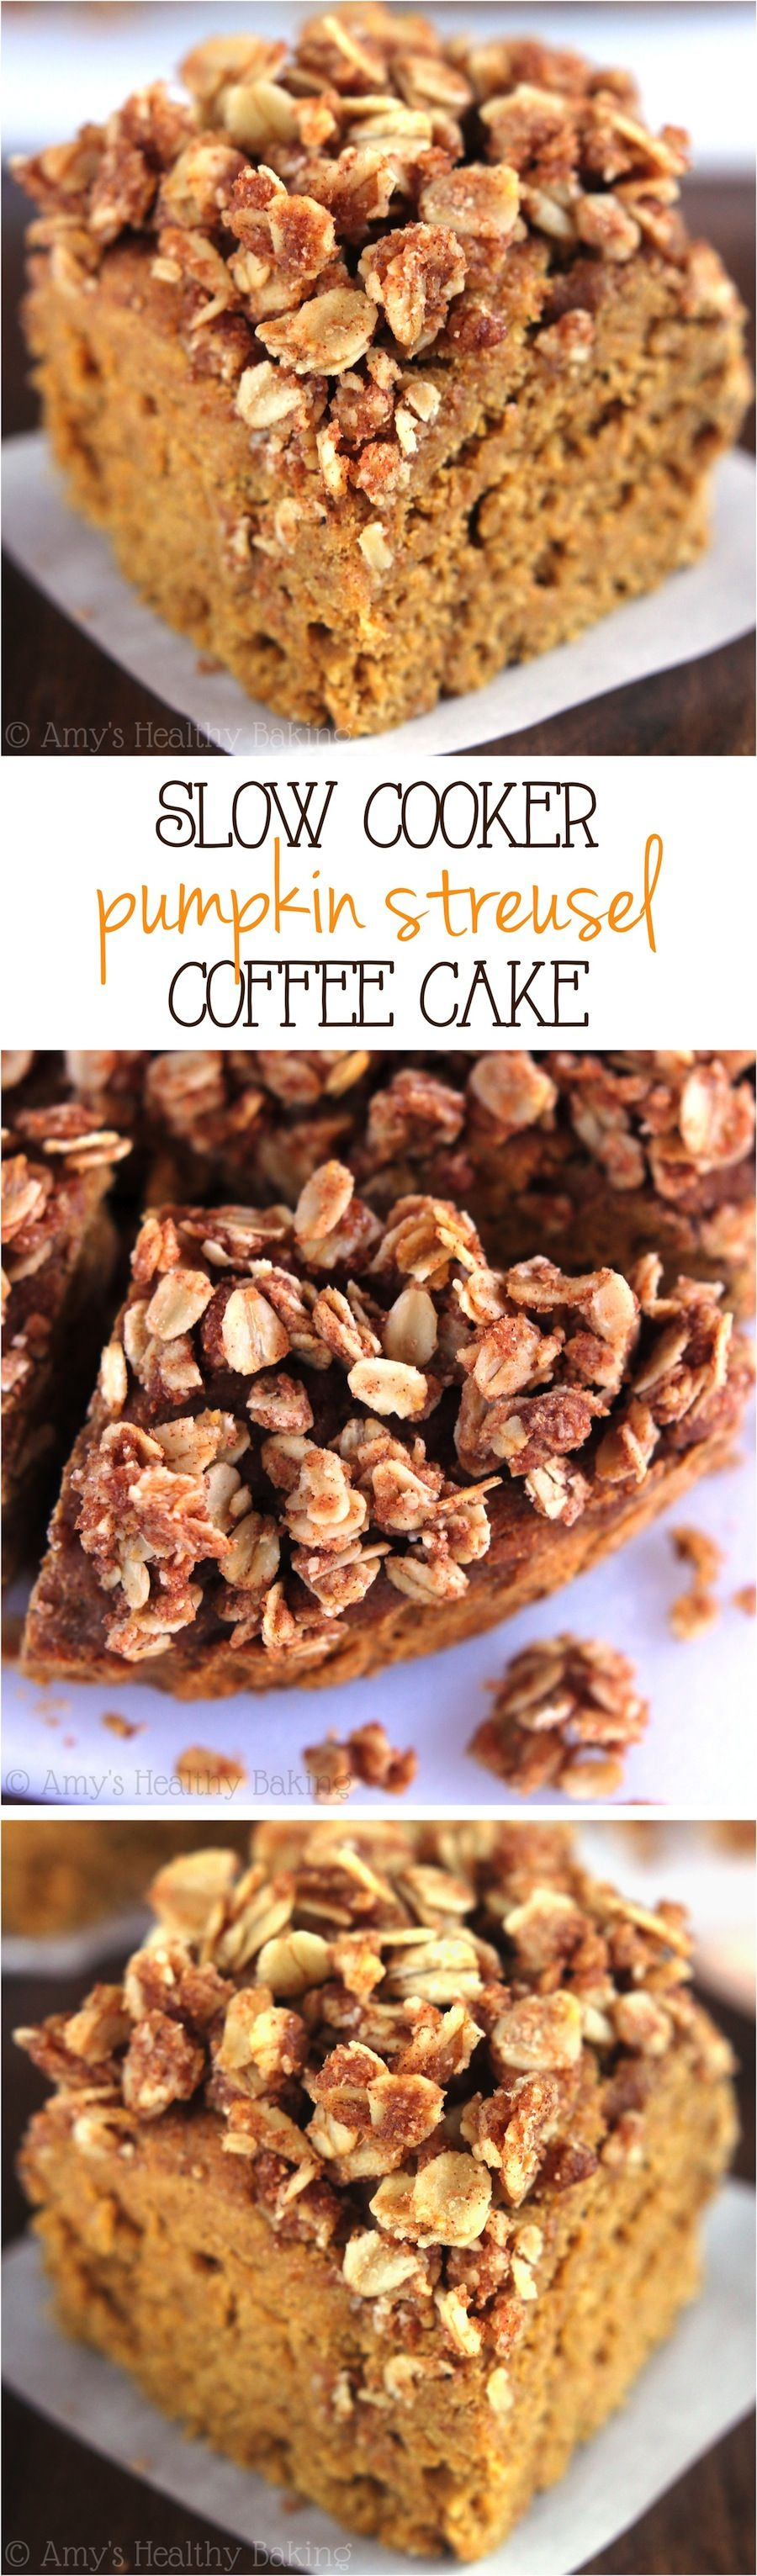 Pumpkin Streusel Coffee Cake made in the slow cooker